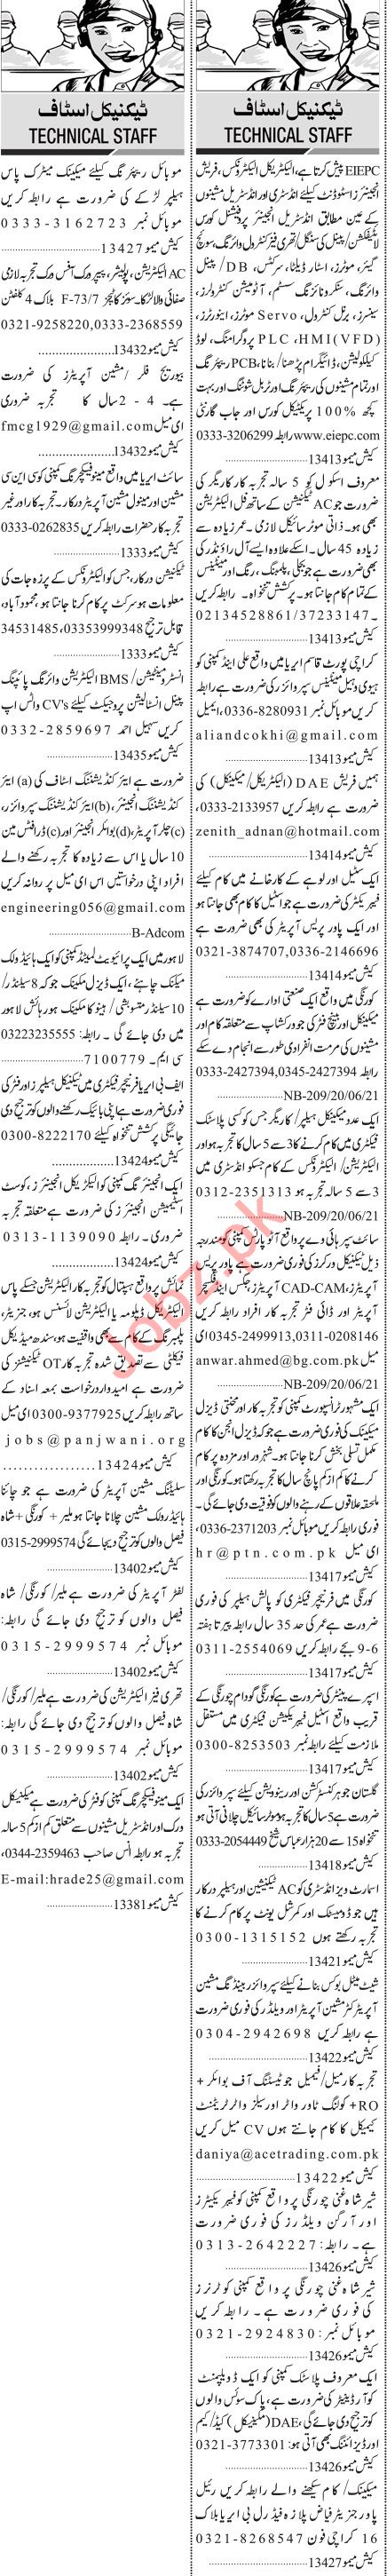 Jang Sunday Classified Ads 20 June 2021 for Manufacturing